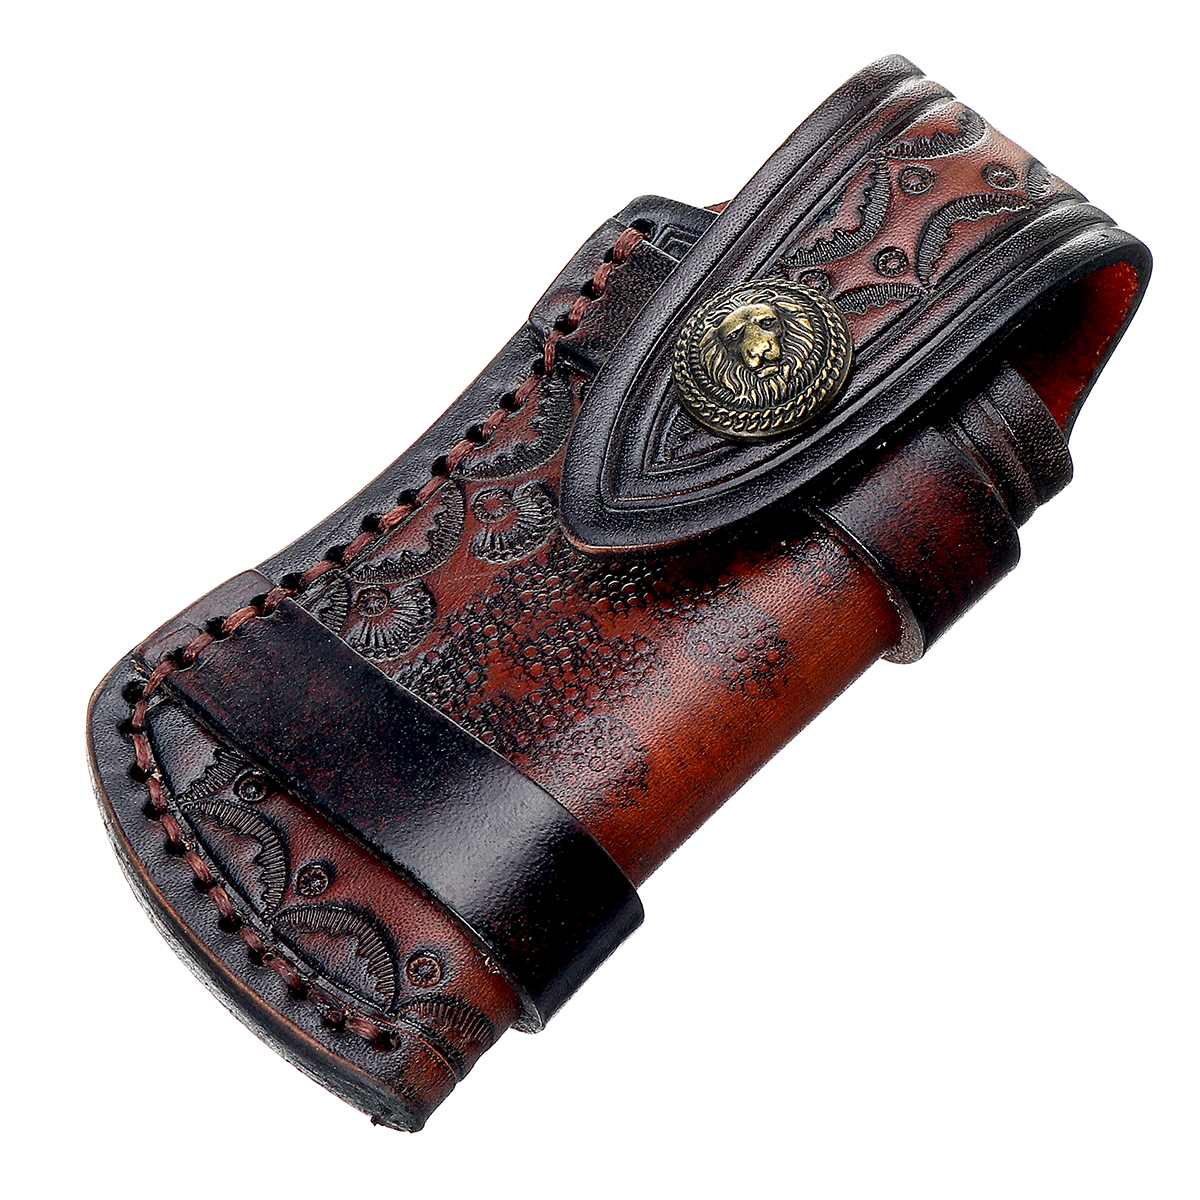 Handmade Knife Leather Sheath With Waist Belt Buckle Pocket Cosplay Costume Decoration Kit for Foldable Cutter Tools Accessories|Knives| |  - title=